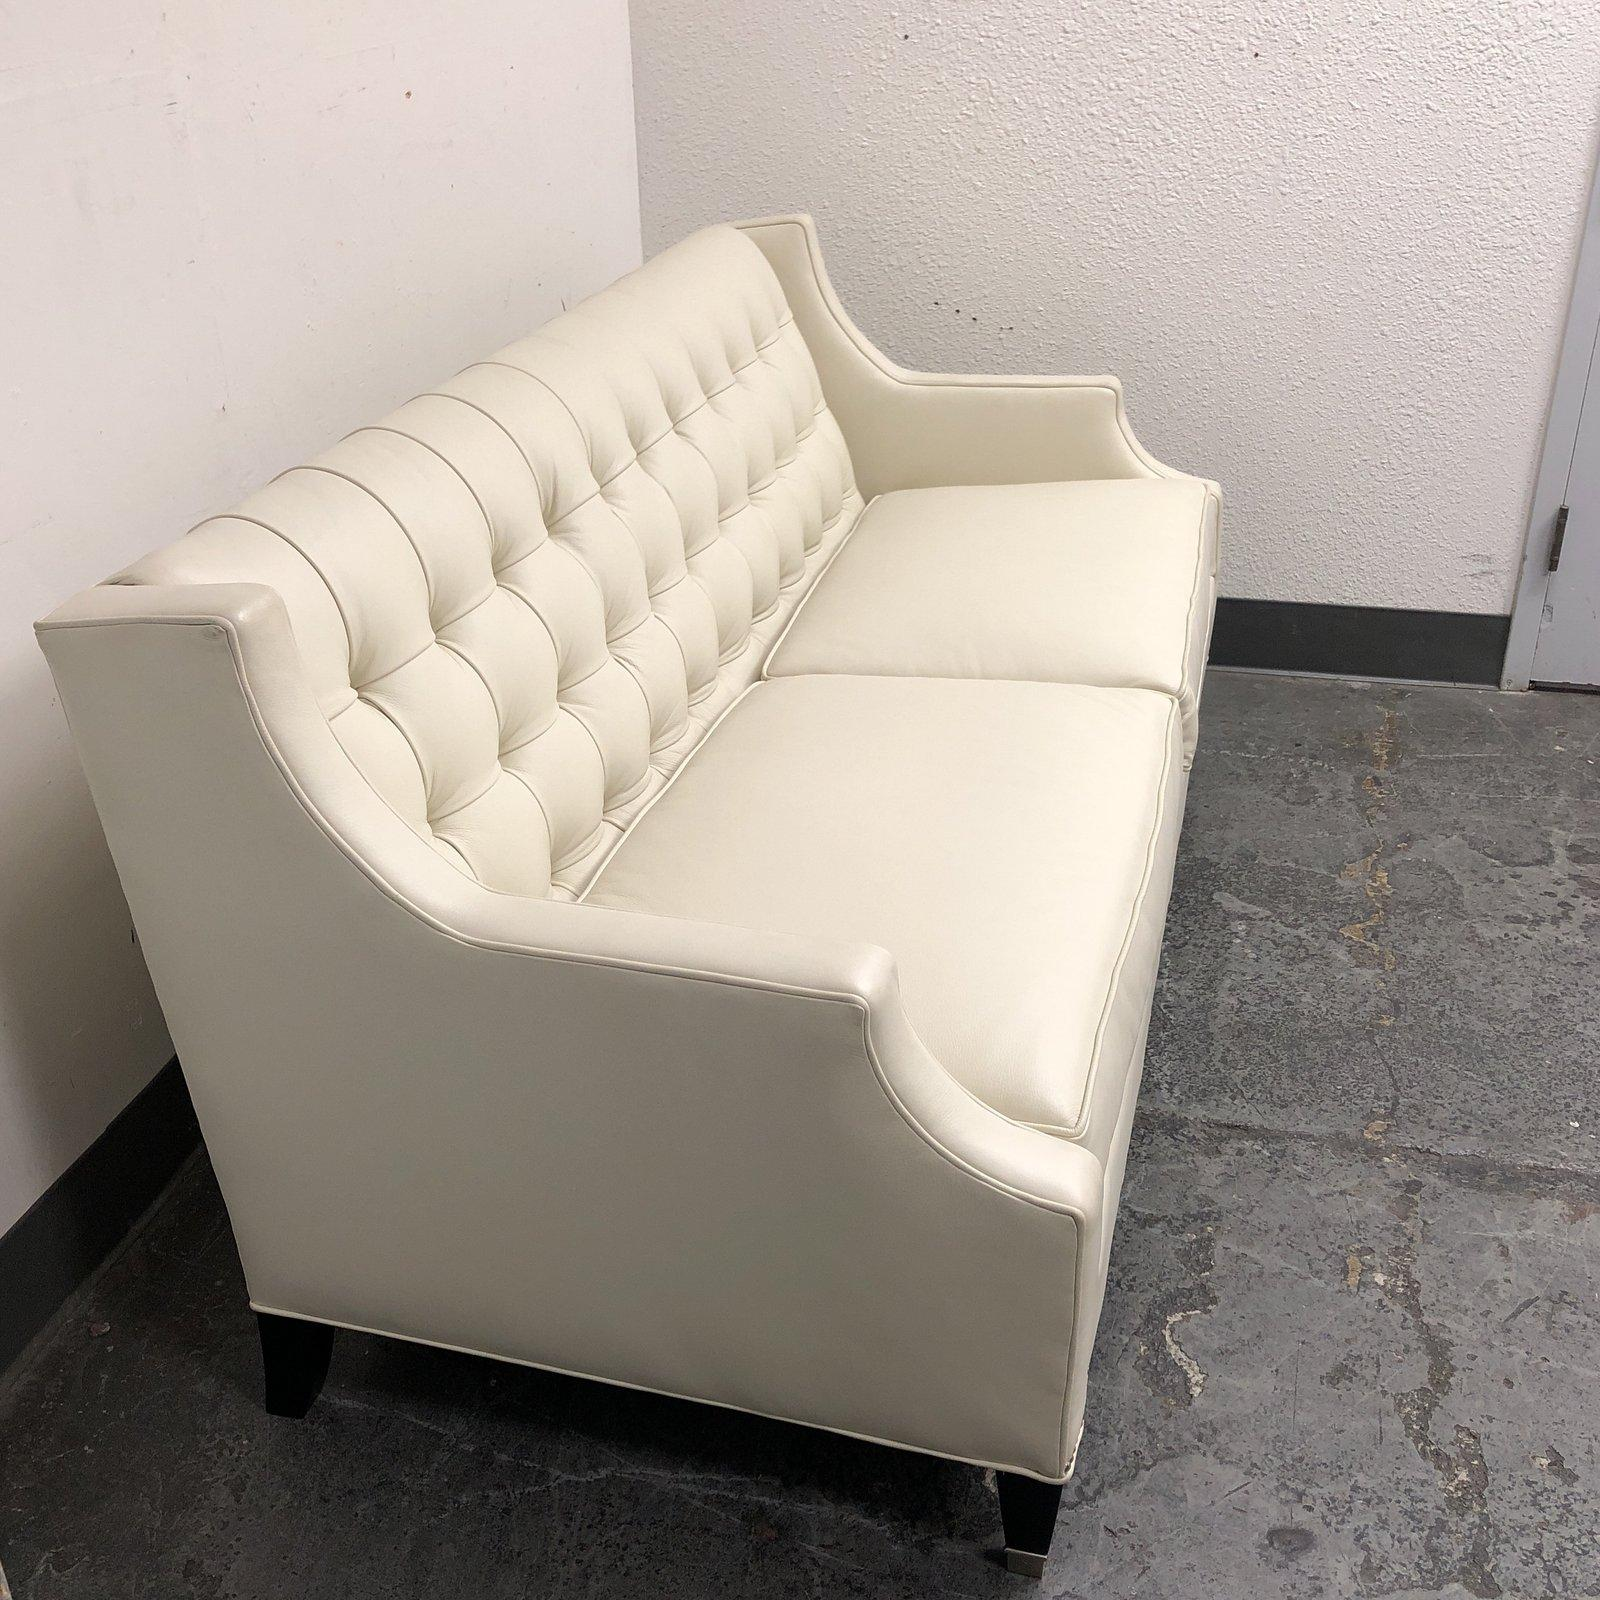 Swell Leathercraft 1410 Harper White Leather Sofa For Sale At 1Stdibs Evergreenethics Interior Chair Design Evergreenethicsorg